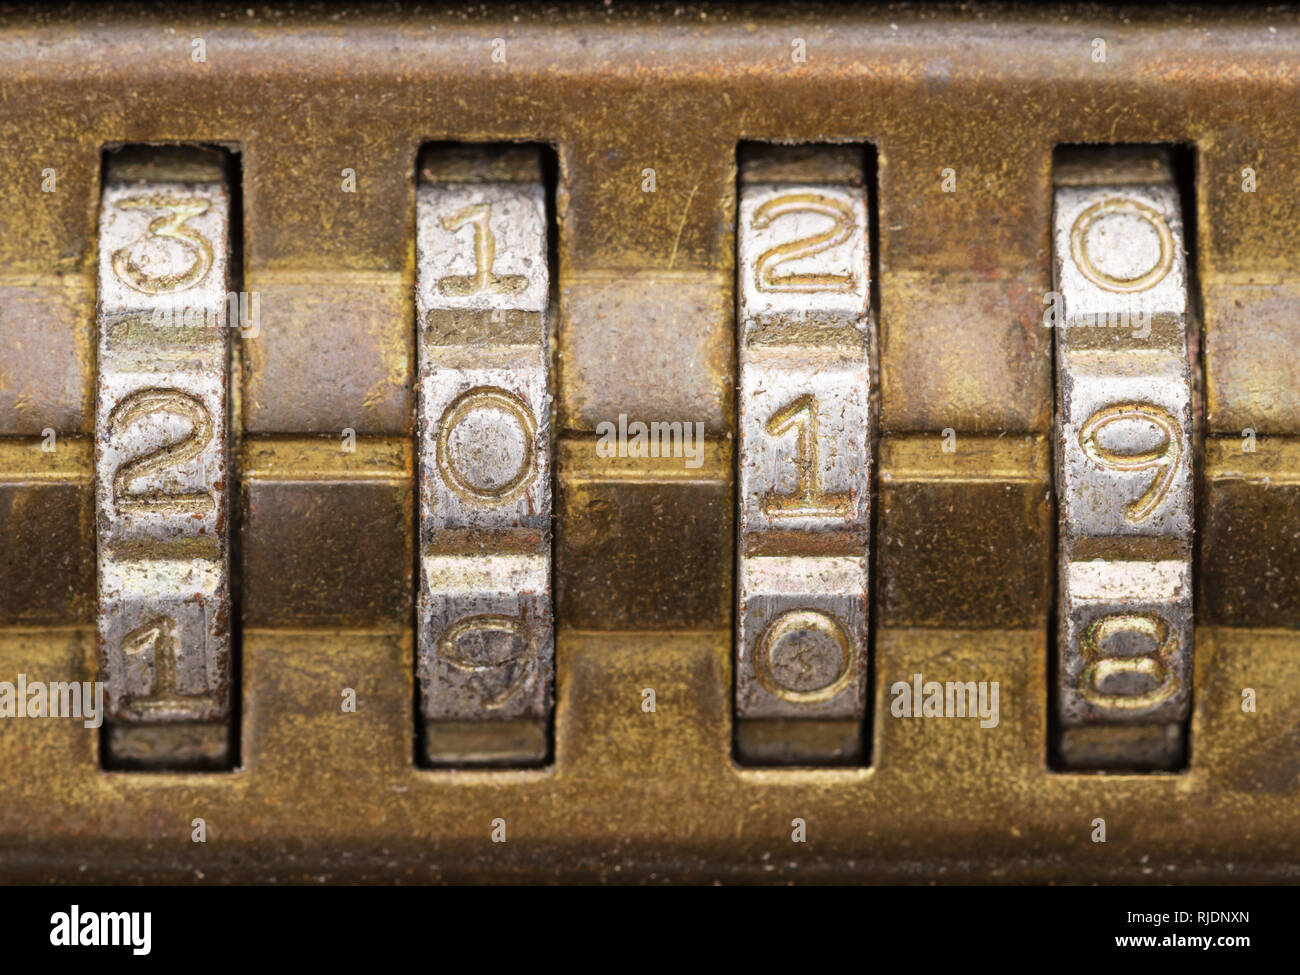 closeup of 2019 on old brass combination lock dials - Stock Image